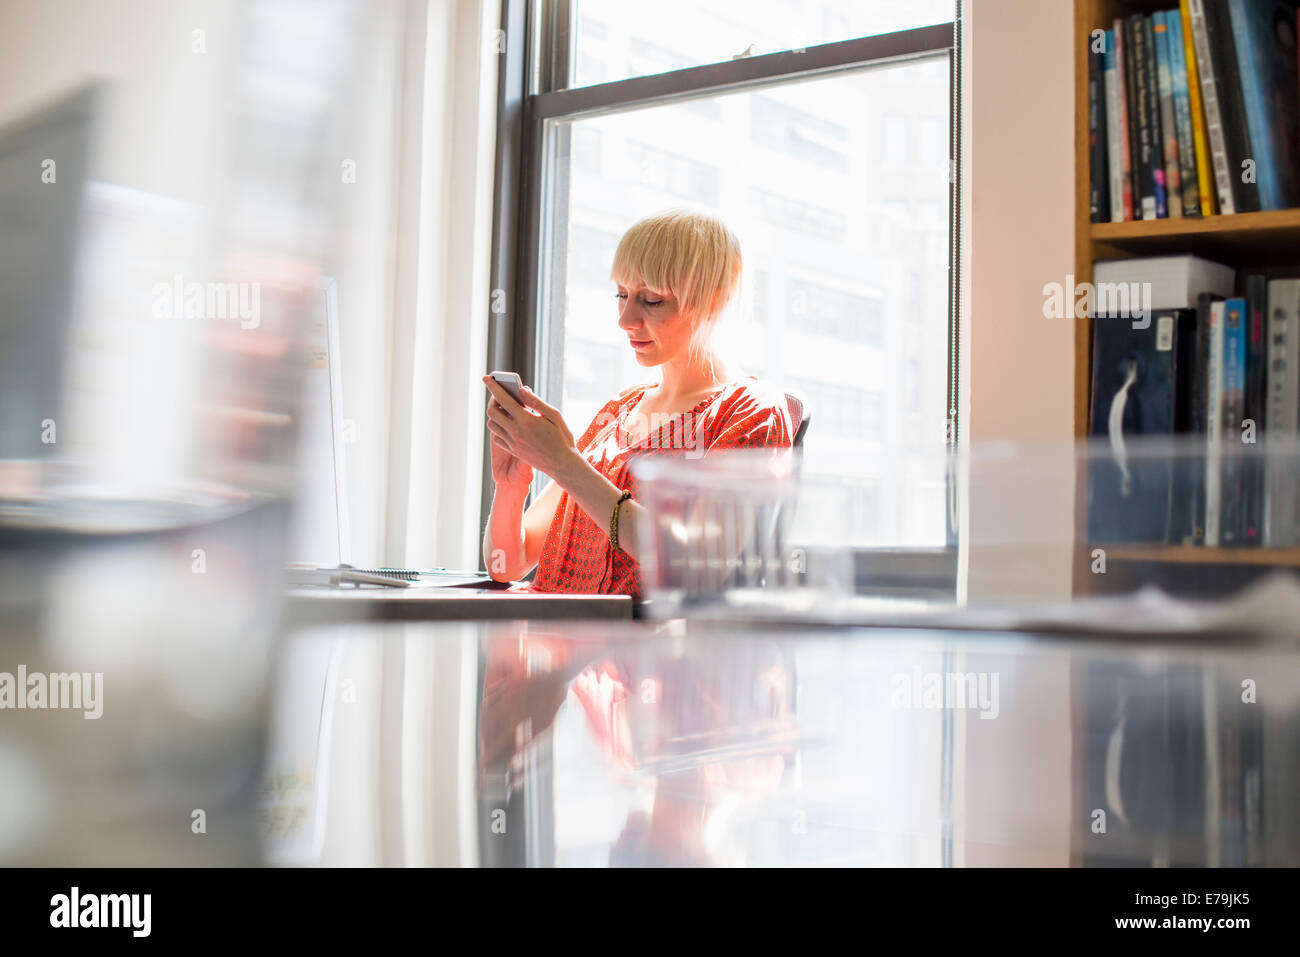 Office life. A young woman checking her cell phone. - Stock Image